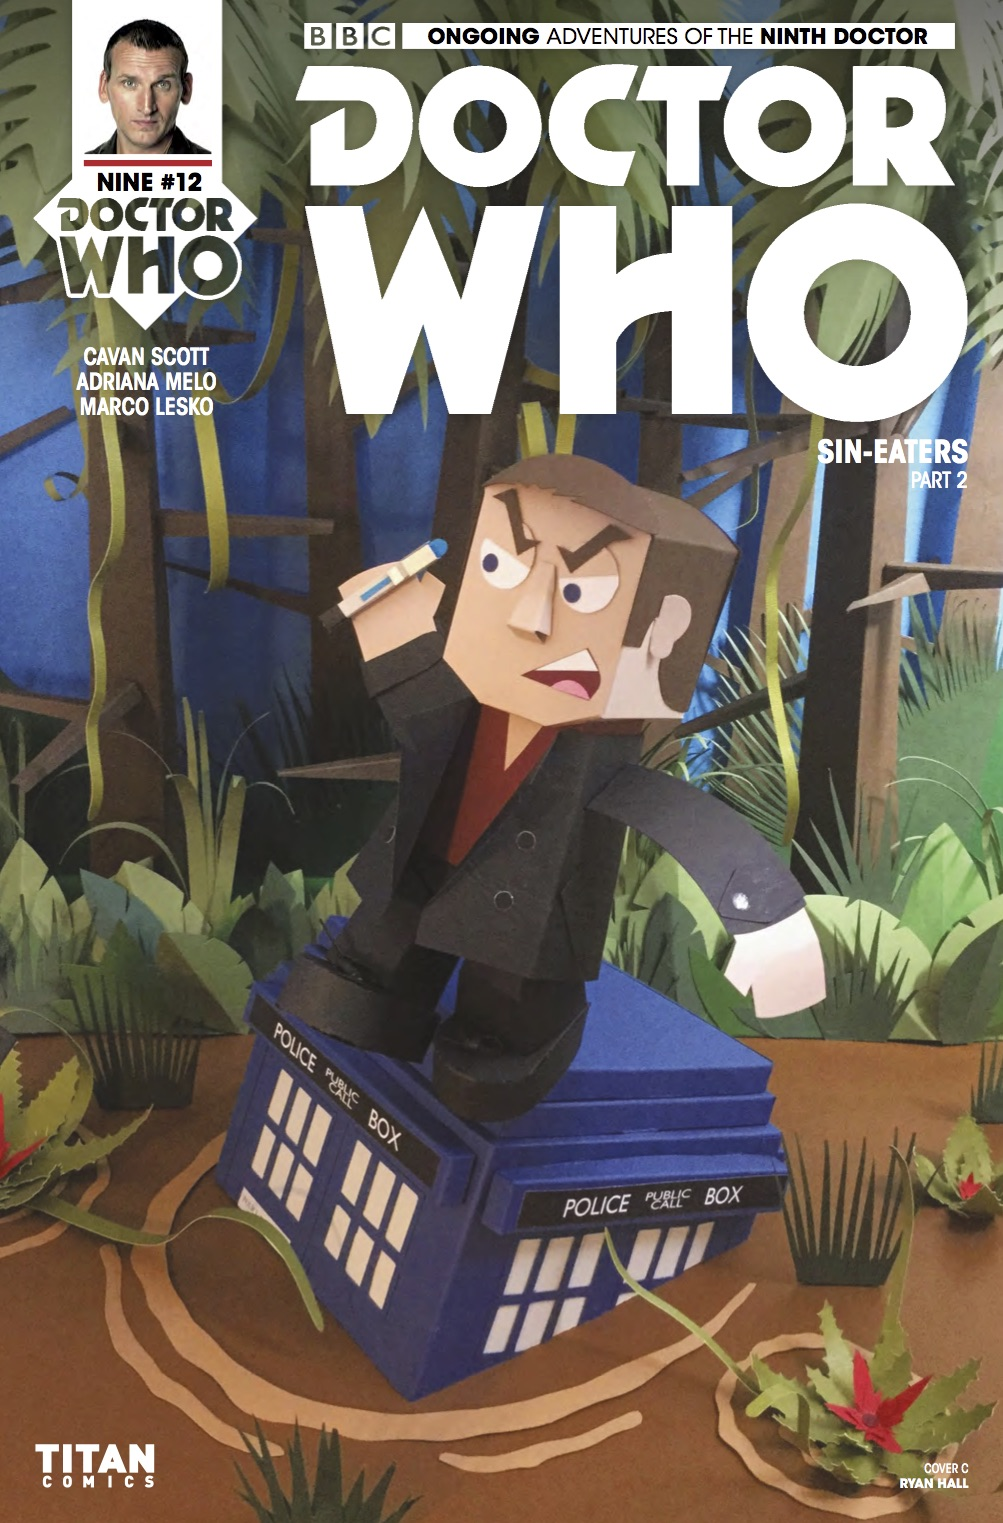 DOCTOR WHO: NINTH DOCTOR #12 Cover C (Credit: Titan RYAN HALL)